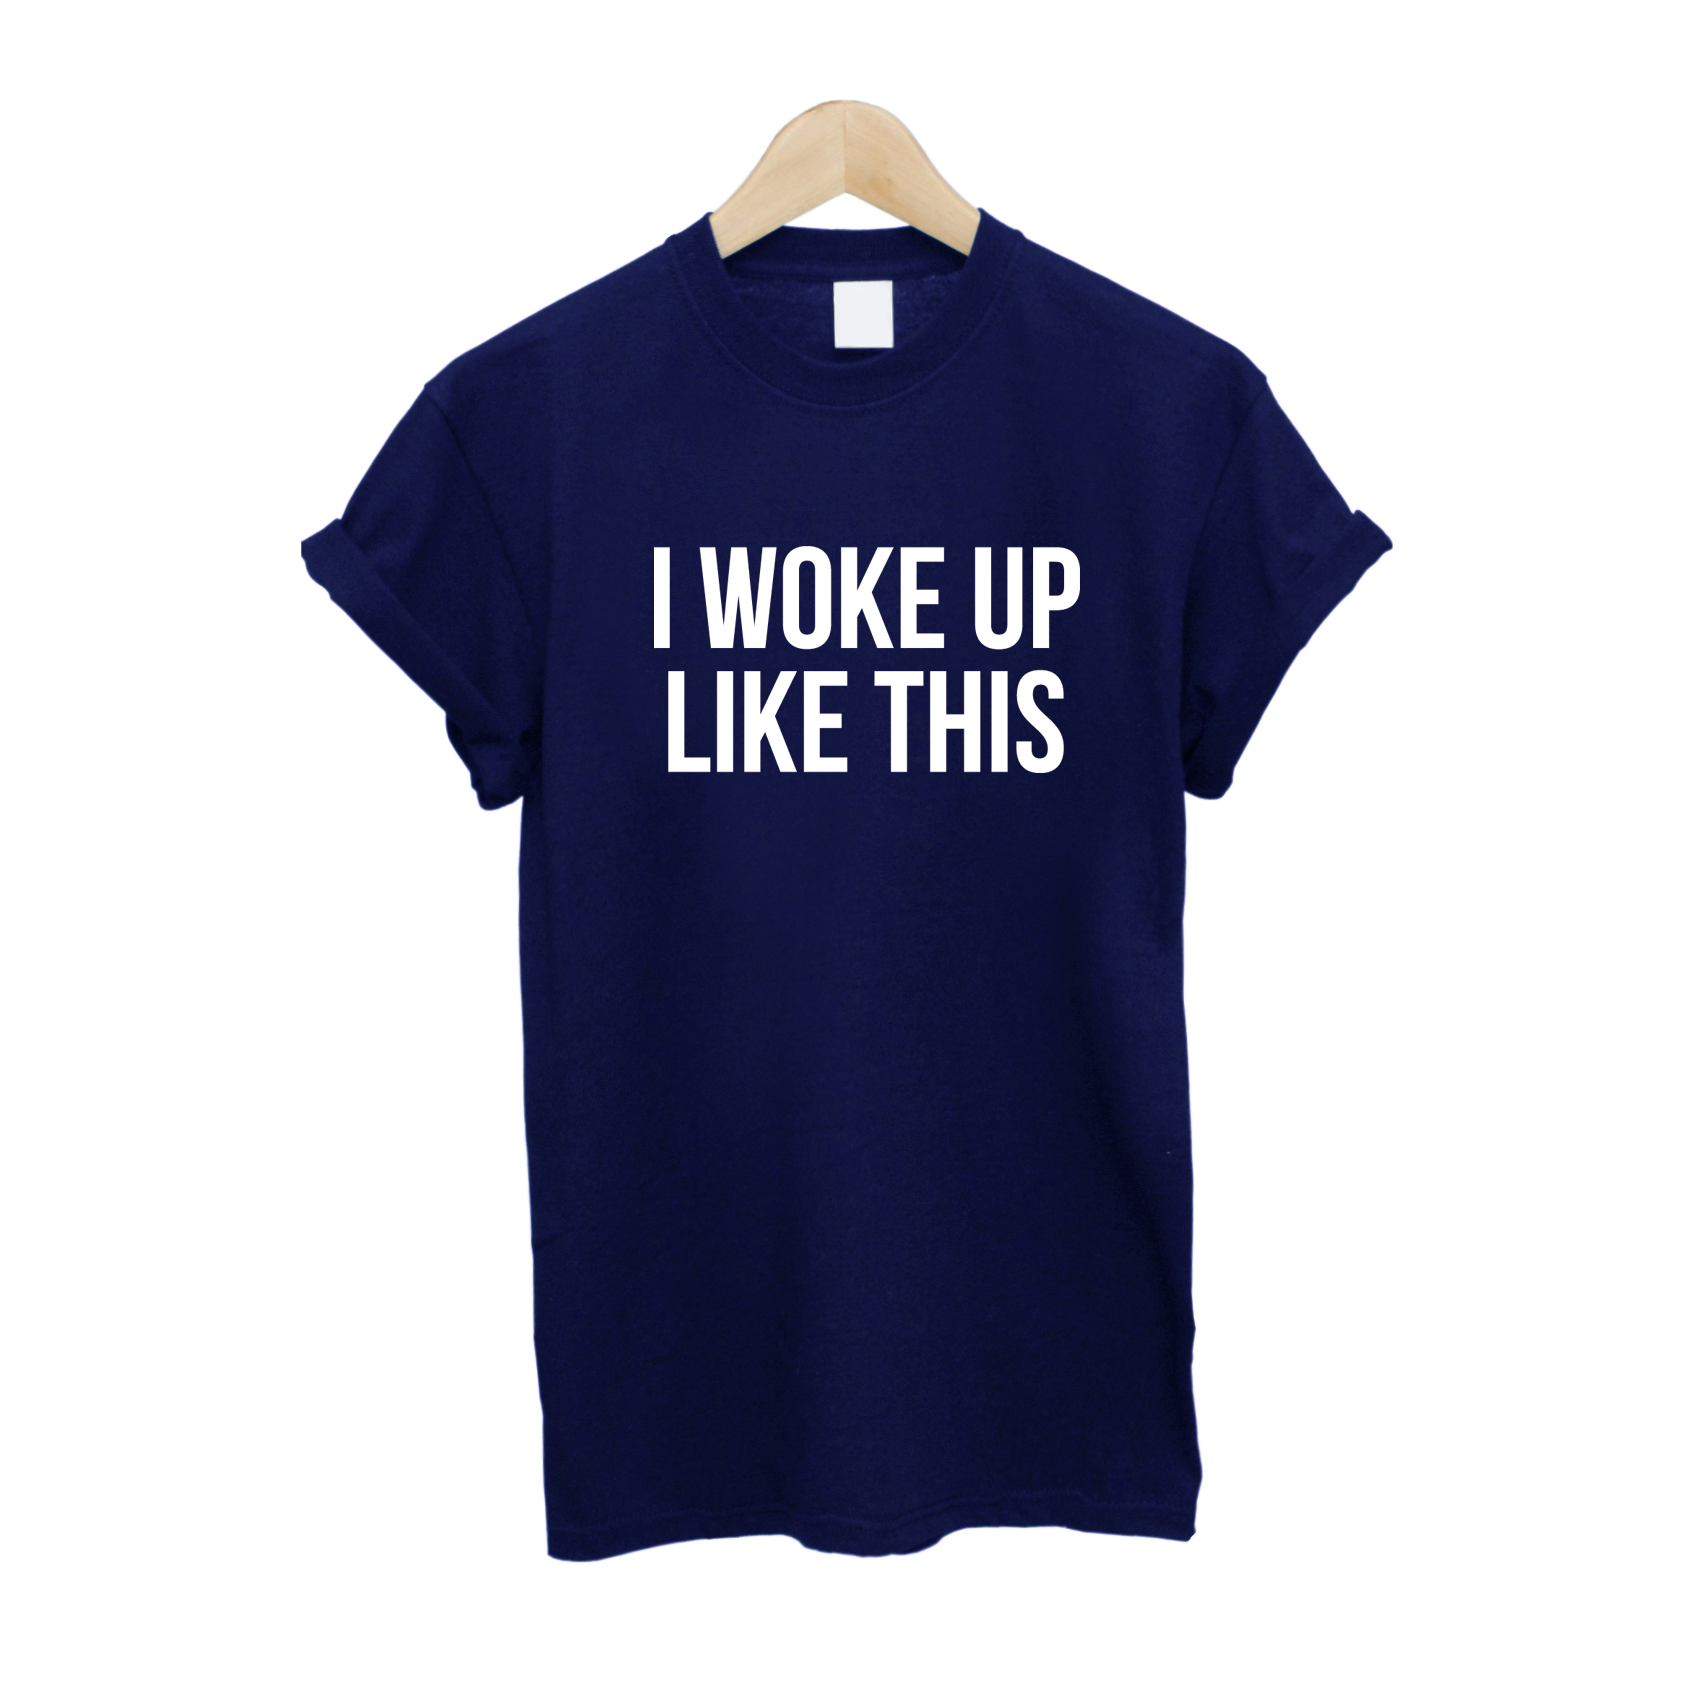 I Woke Up Like This T Shirt £10   Free UK Delivery - #TeeIsland